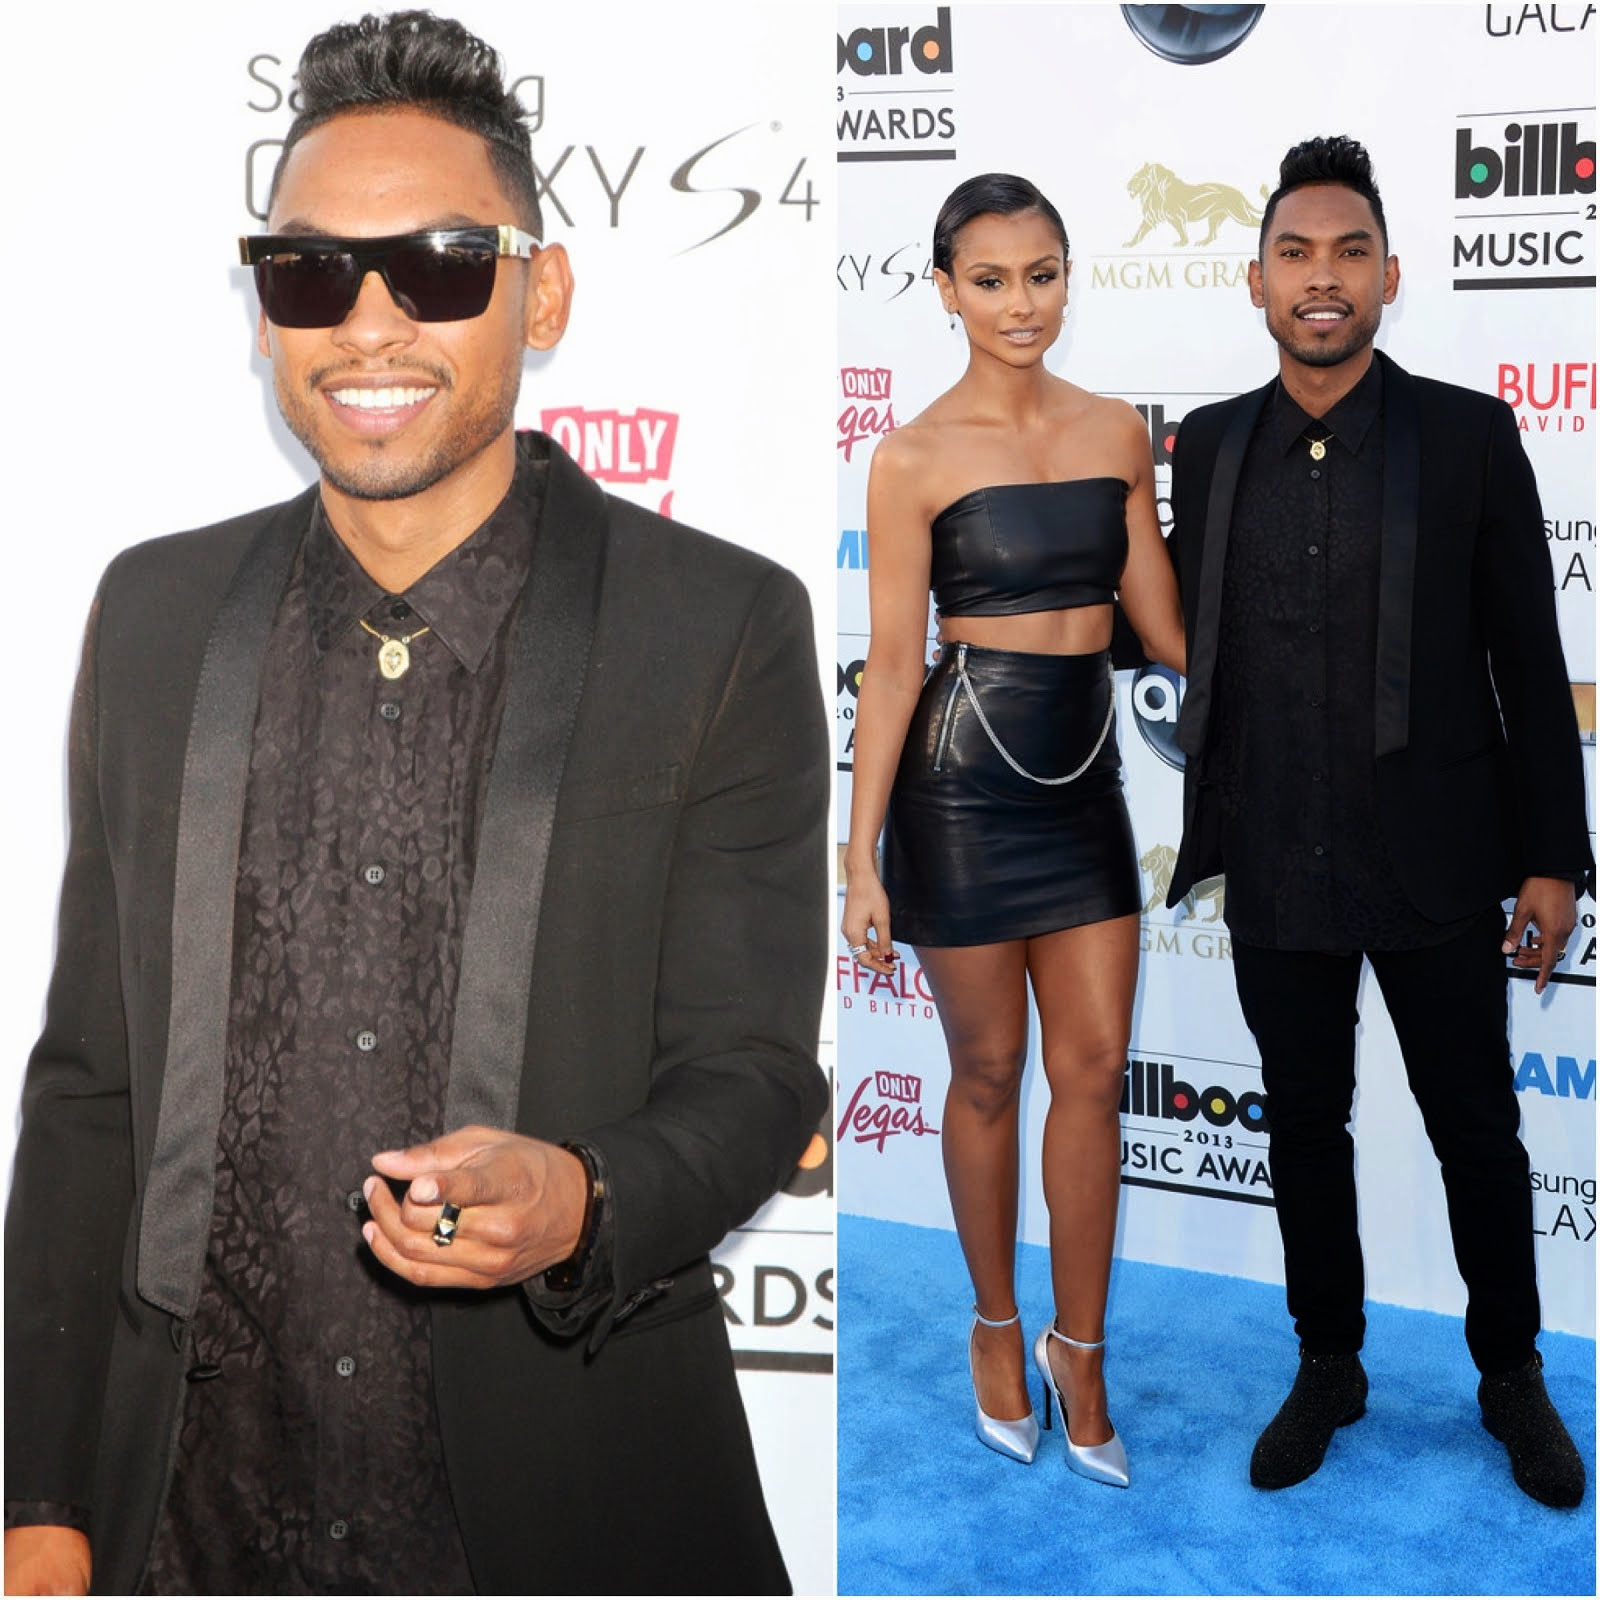 00O00 Menswear Blog: Miguel in Saint Laurent - 2013 Billboard Music Awards